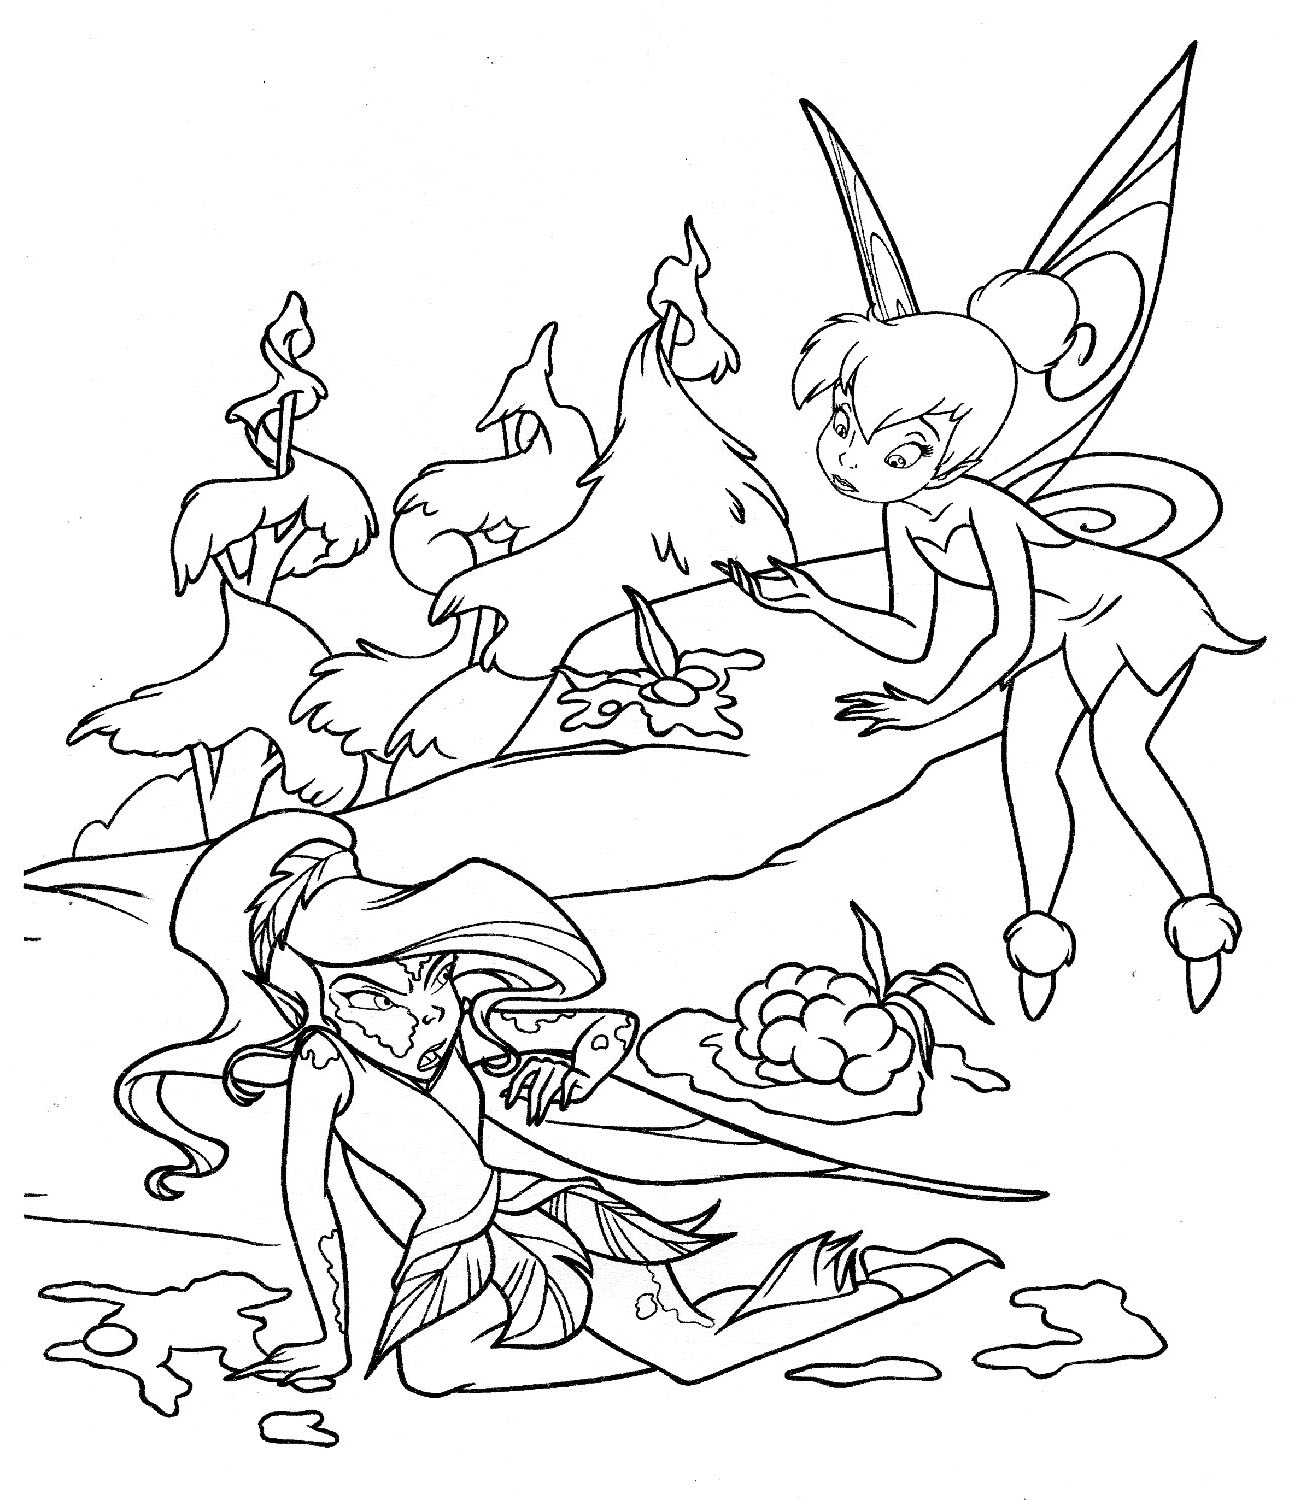 tinker bell coloring pages tinkerbell and periwinkle coloring pages coloring home bell coloring tinker pages